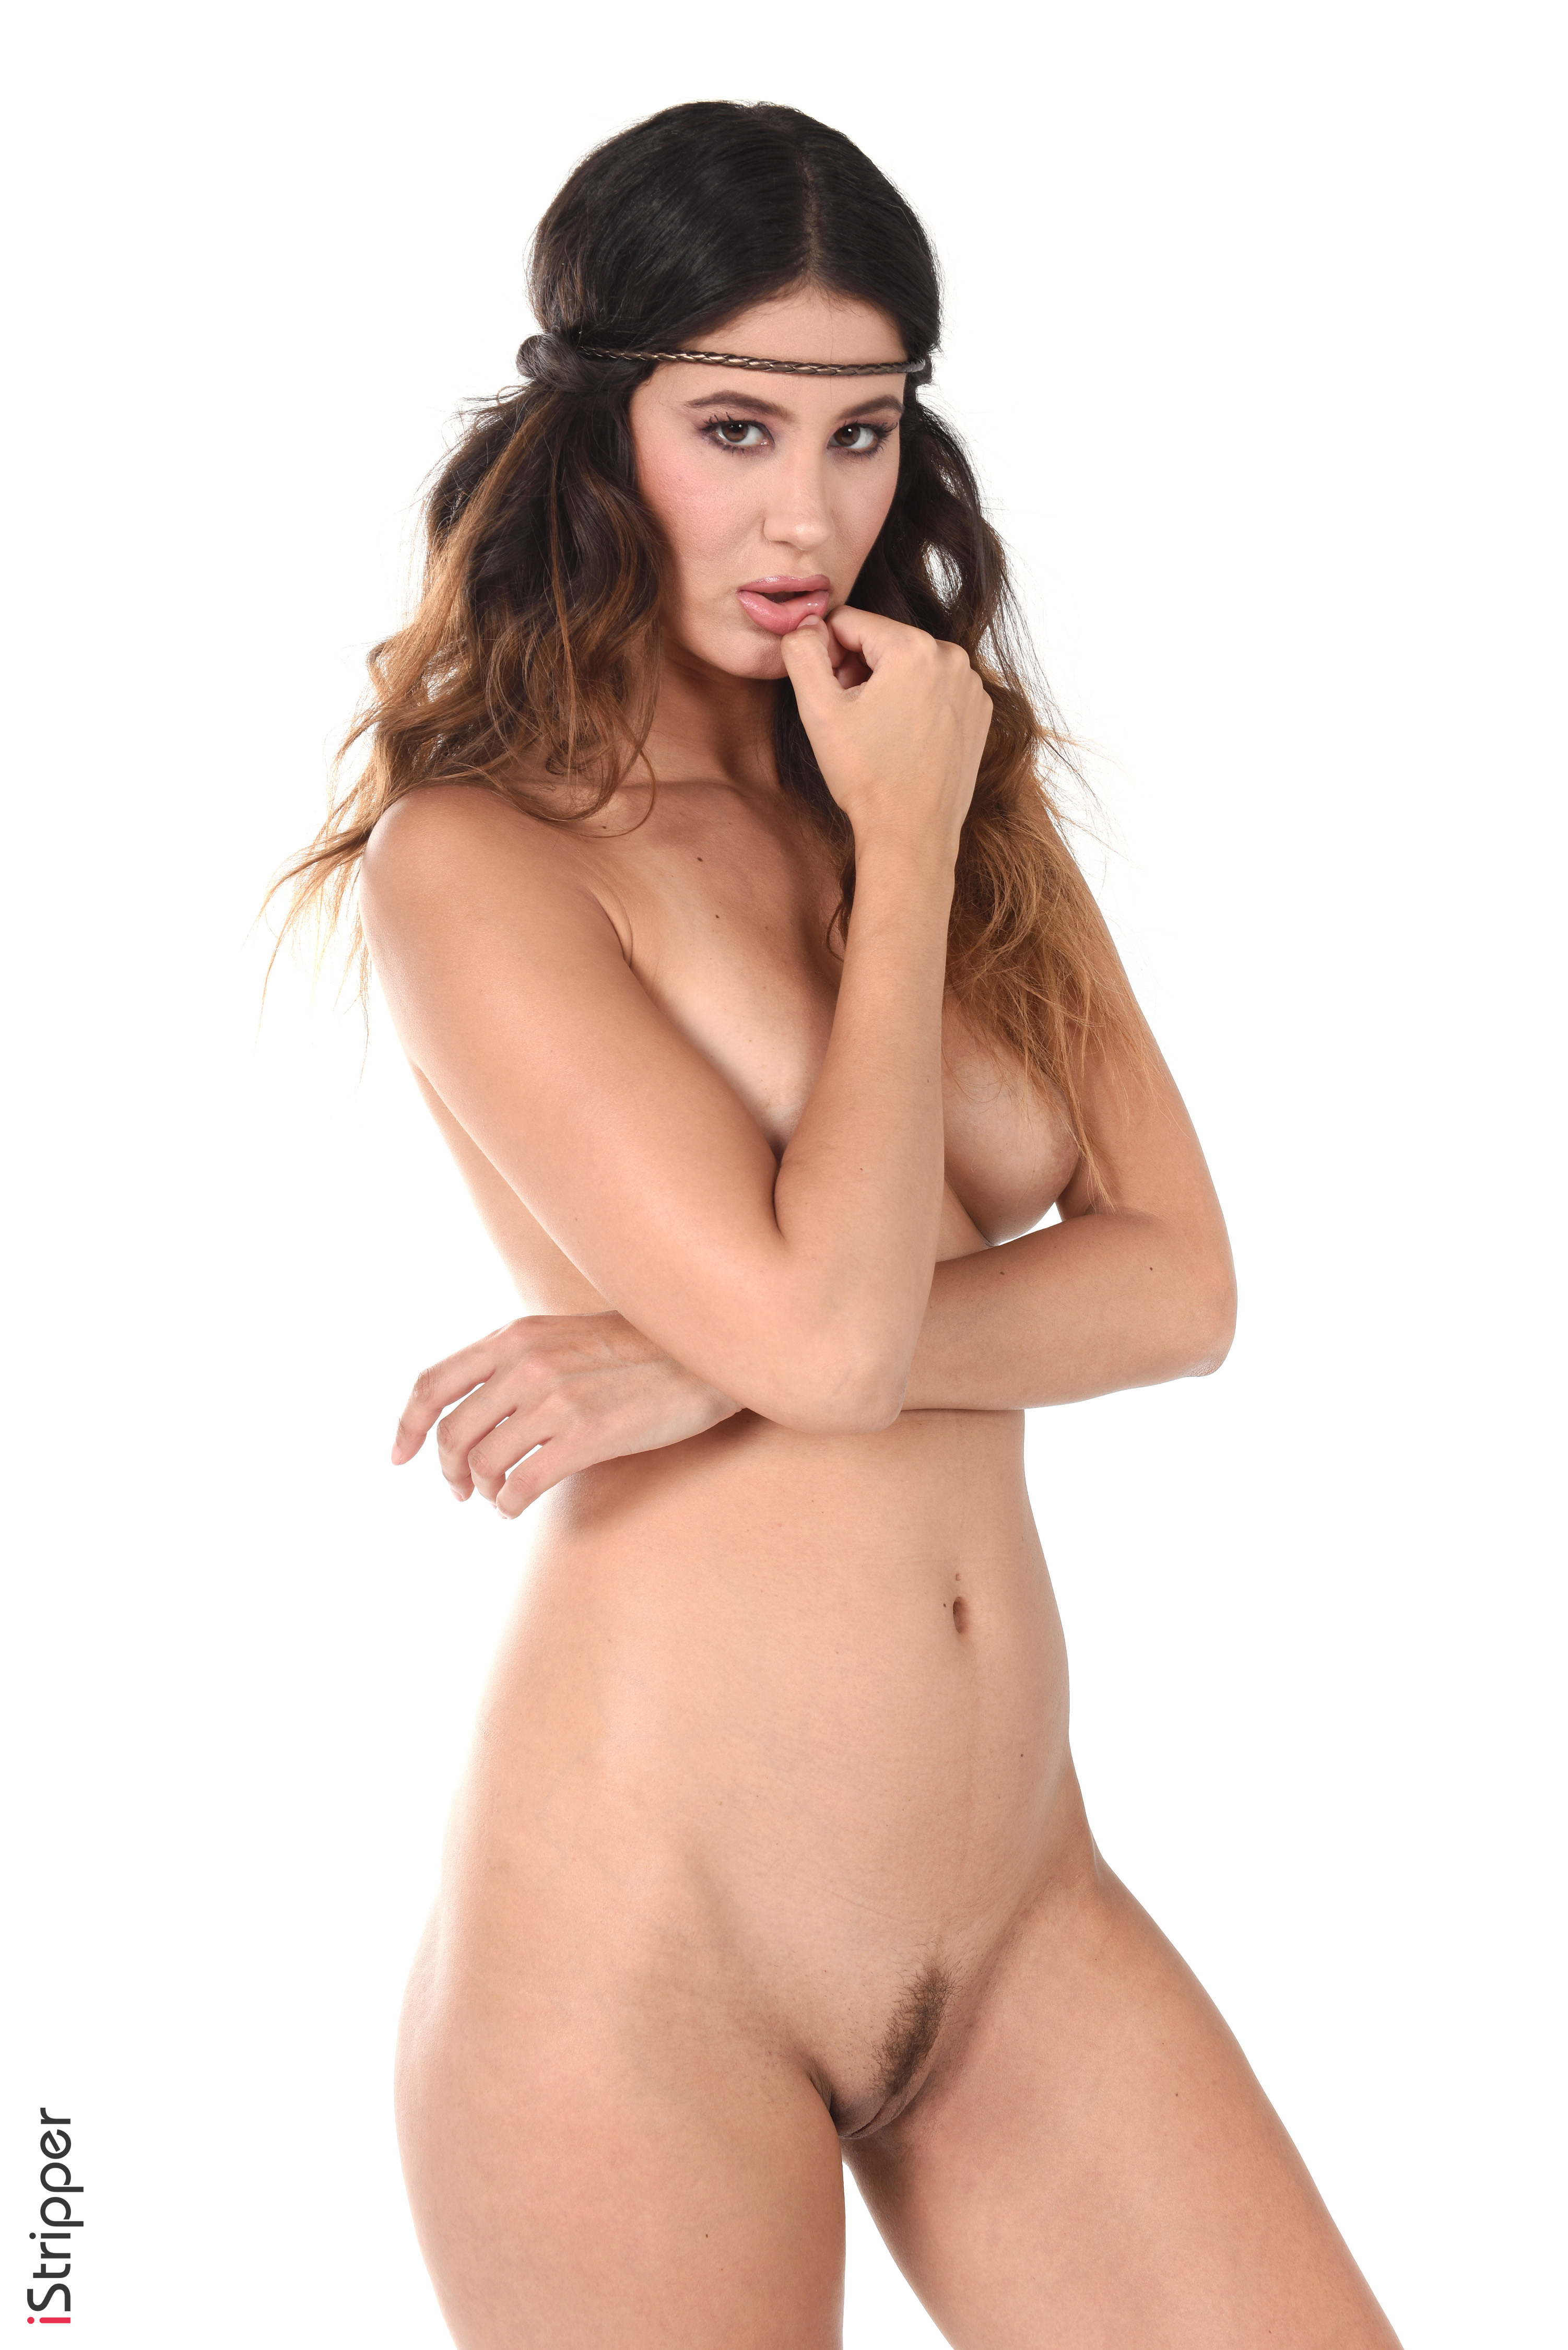 wallpapers of naked girls